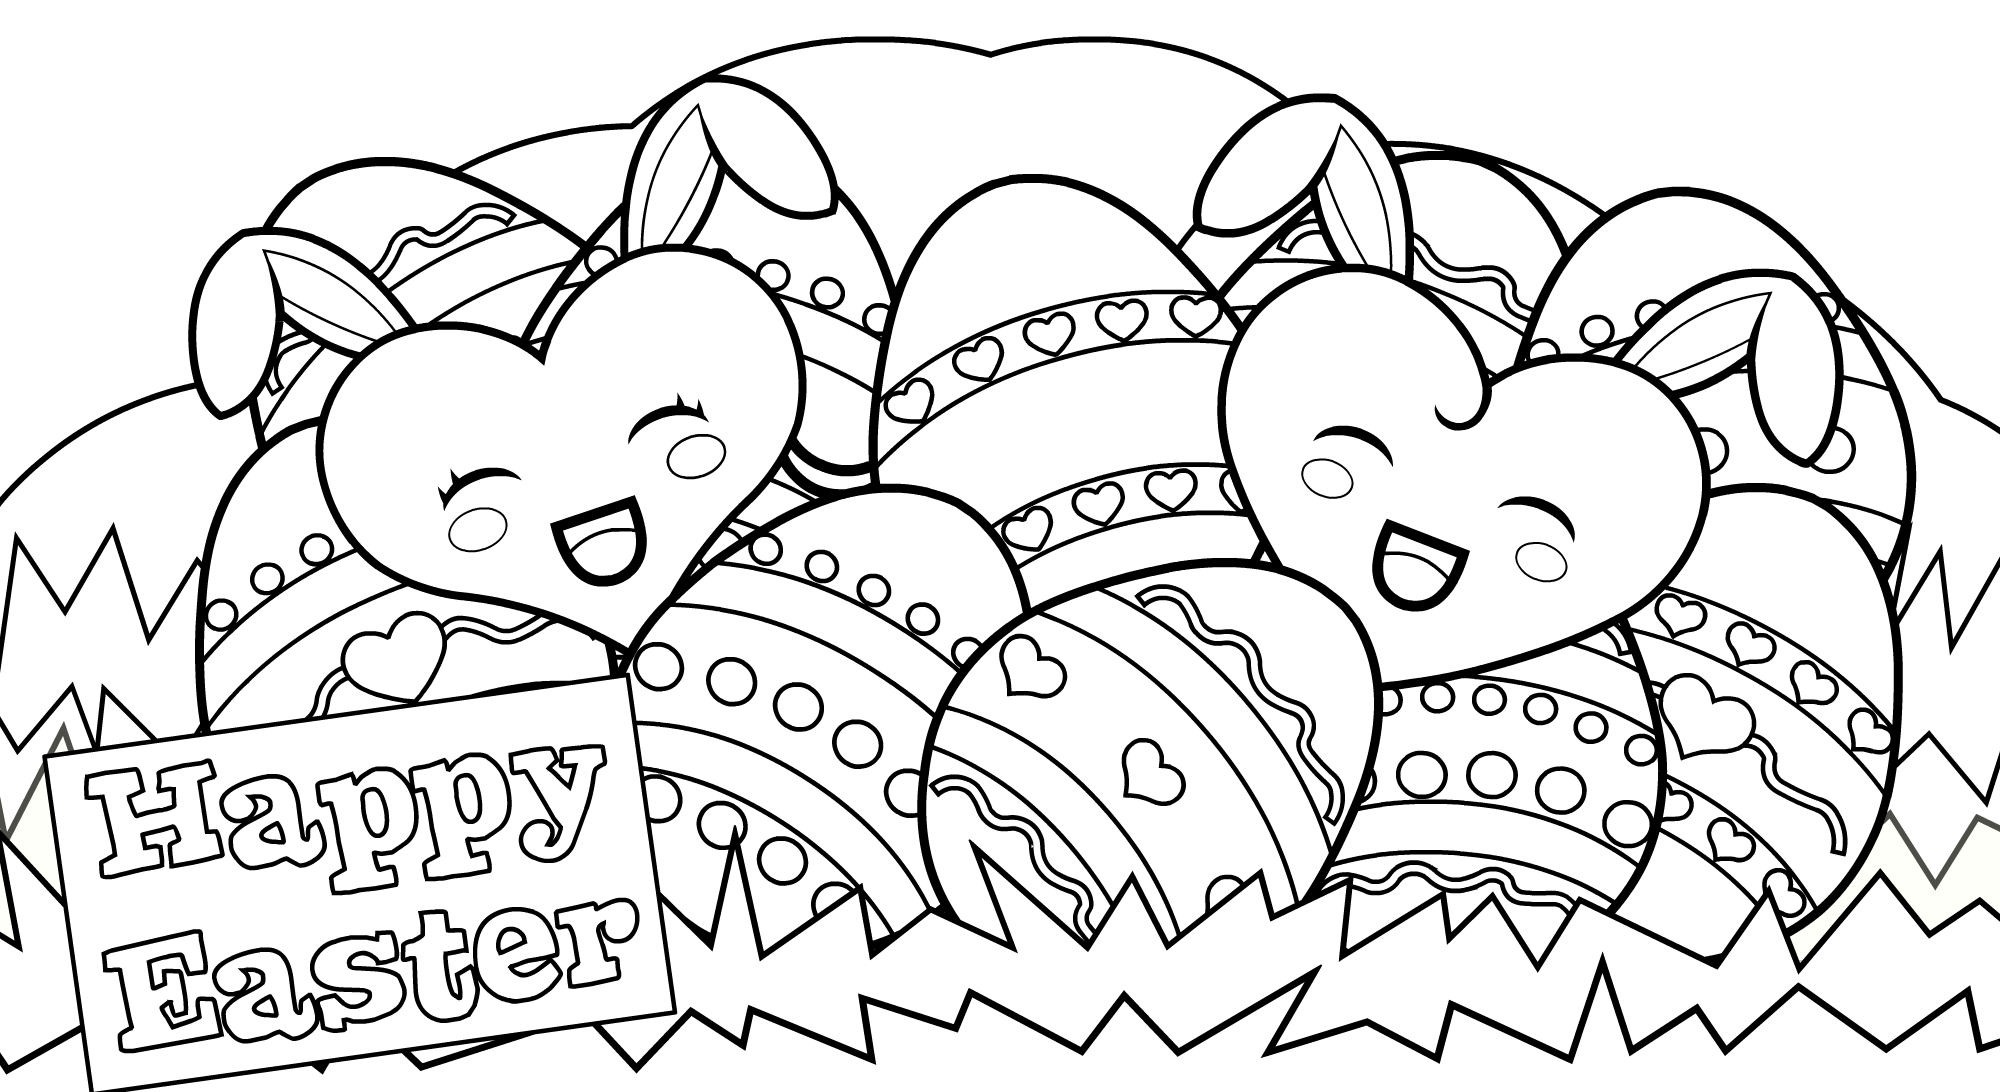 Happy Easter Coloring Pages Easter Coloring Pages Printable Easter Coloring Book Bunny Coloring Pages